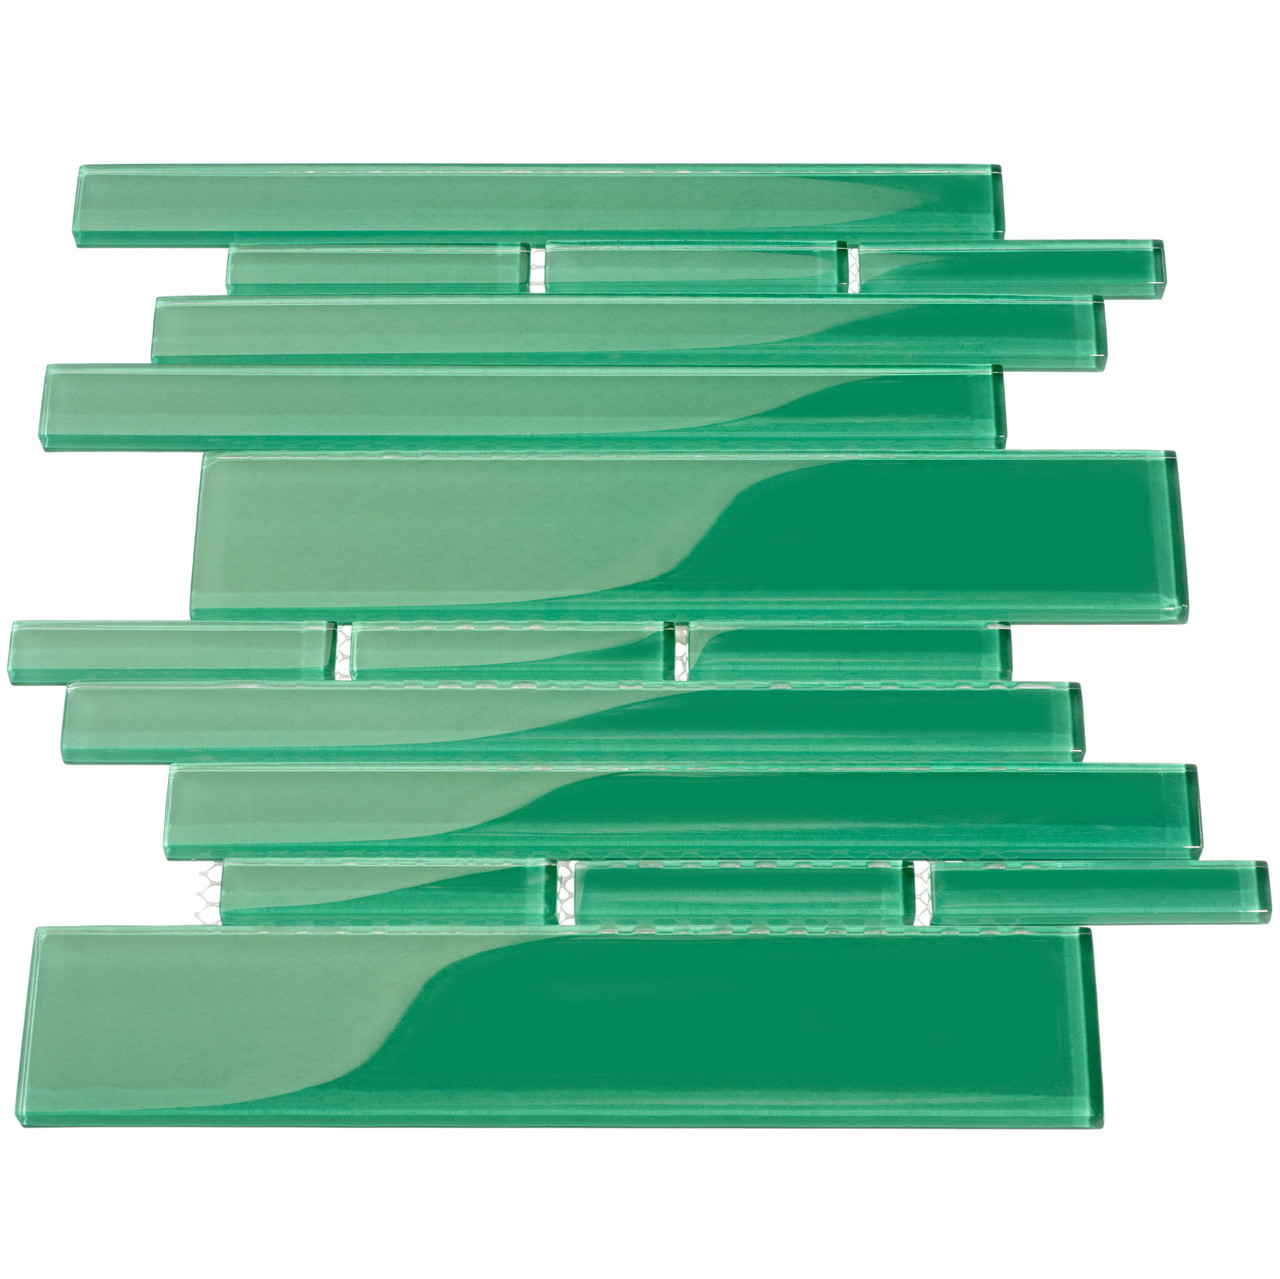 club collection glass tile emerald green